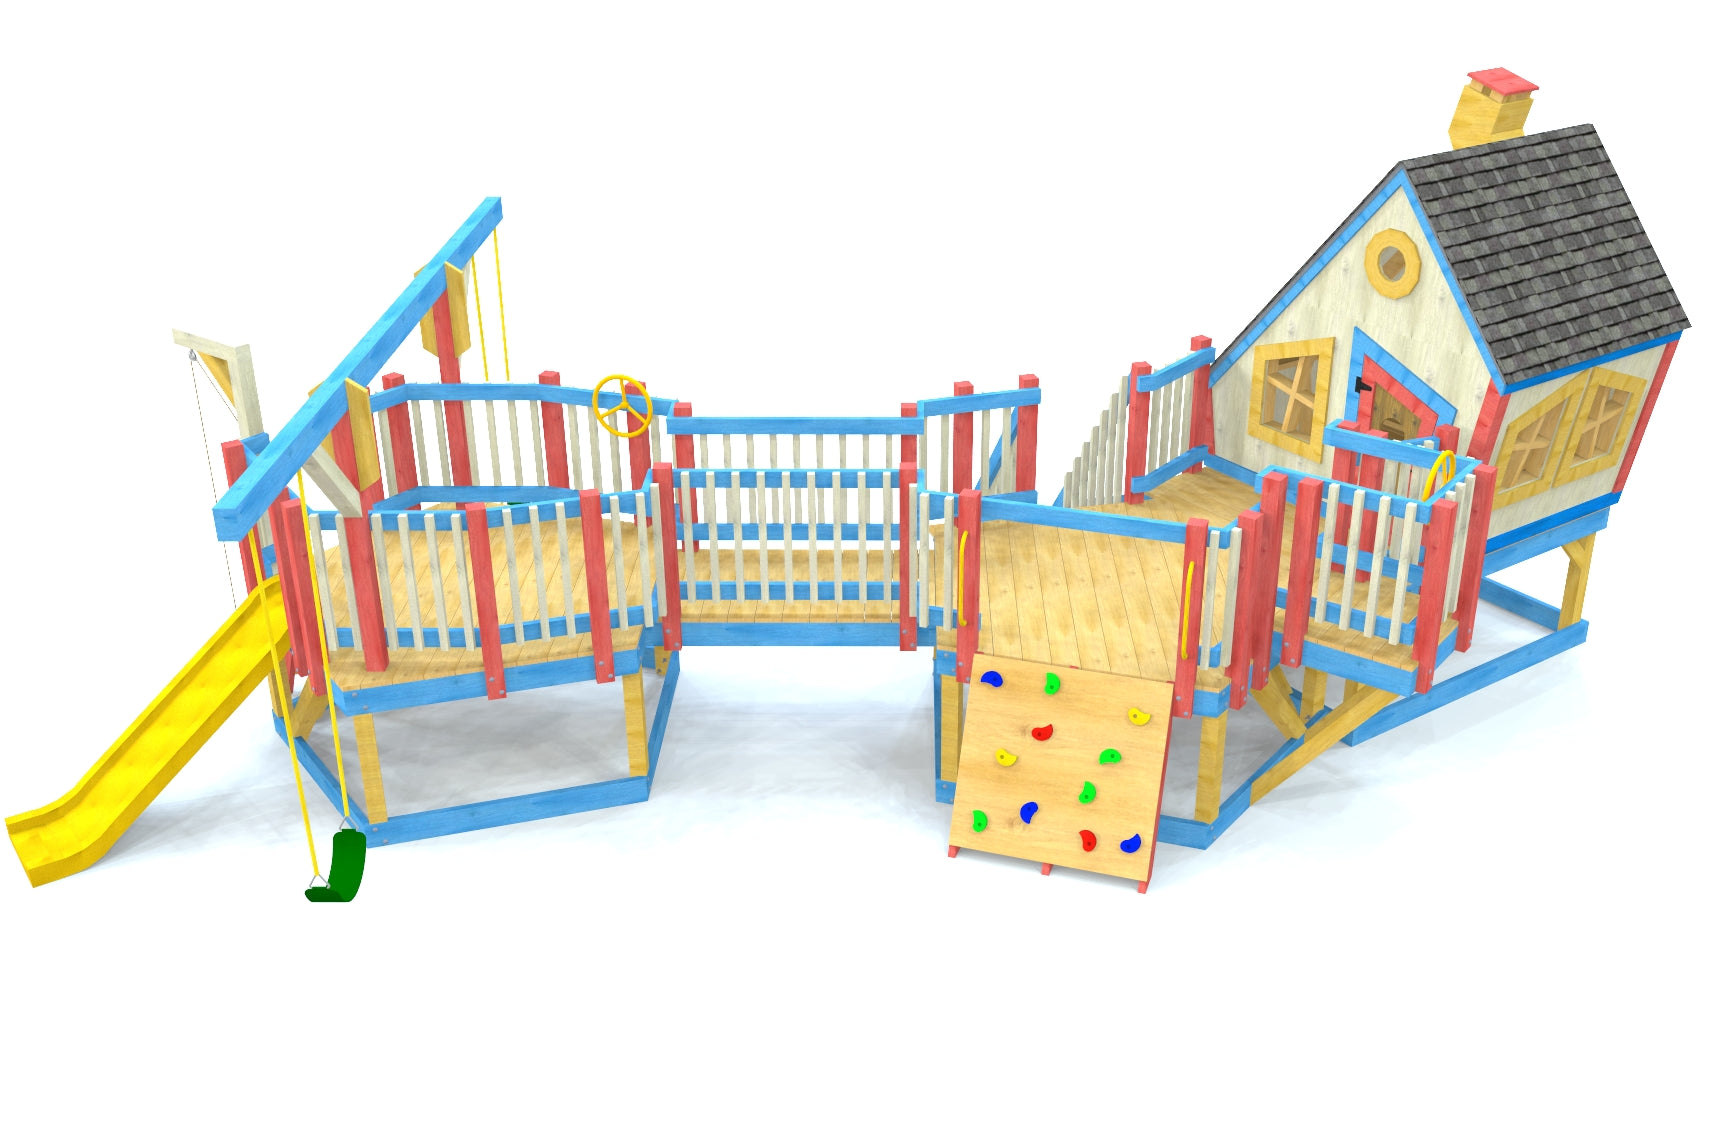 Looney Lodge Playground Plan